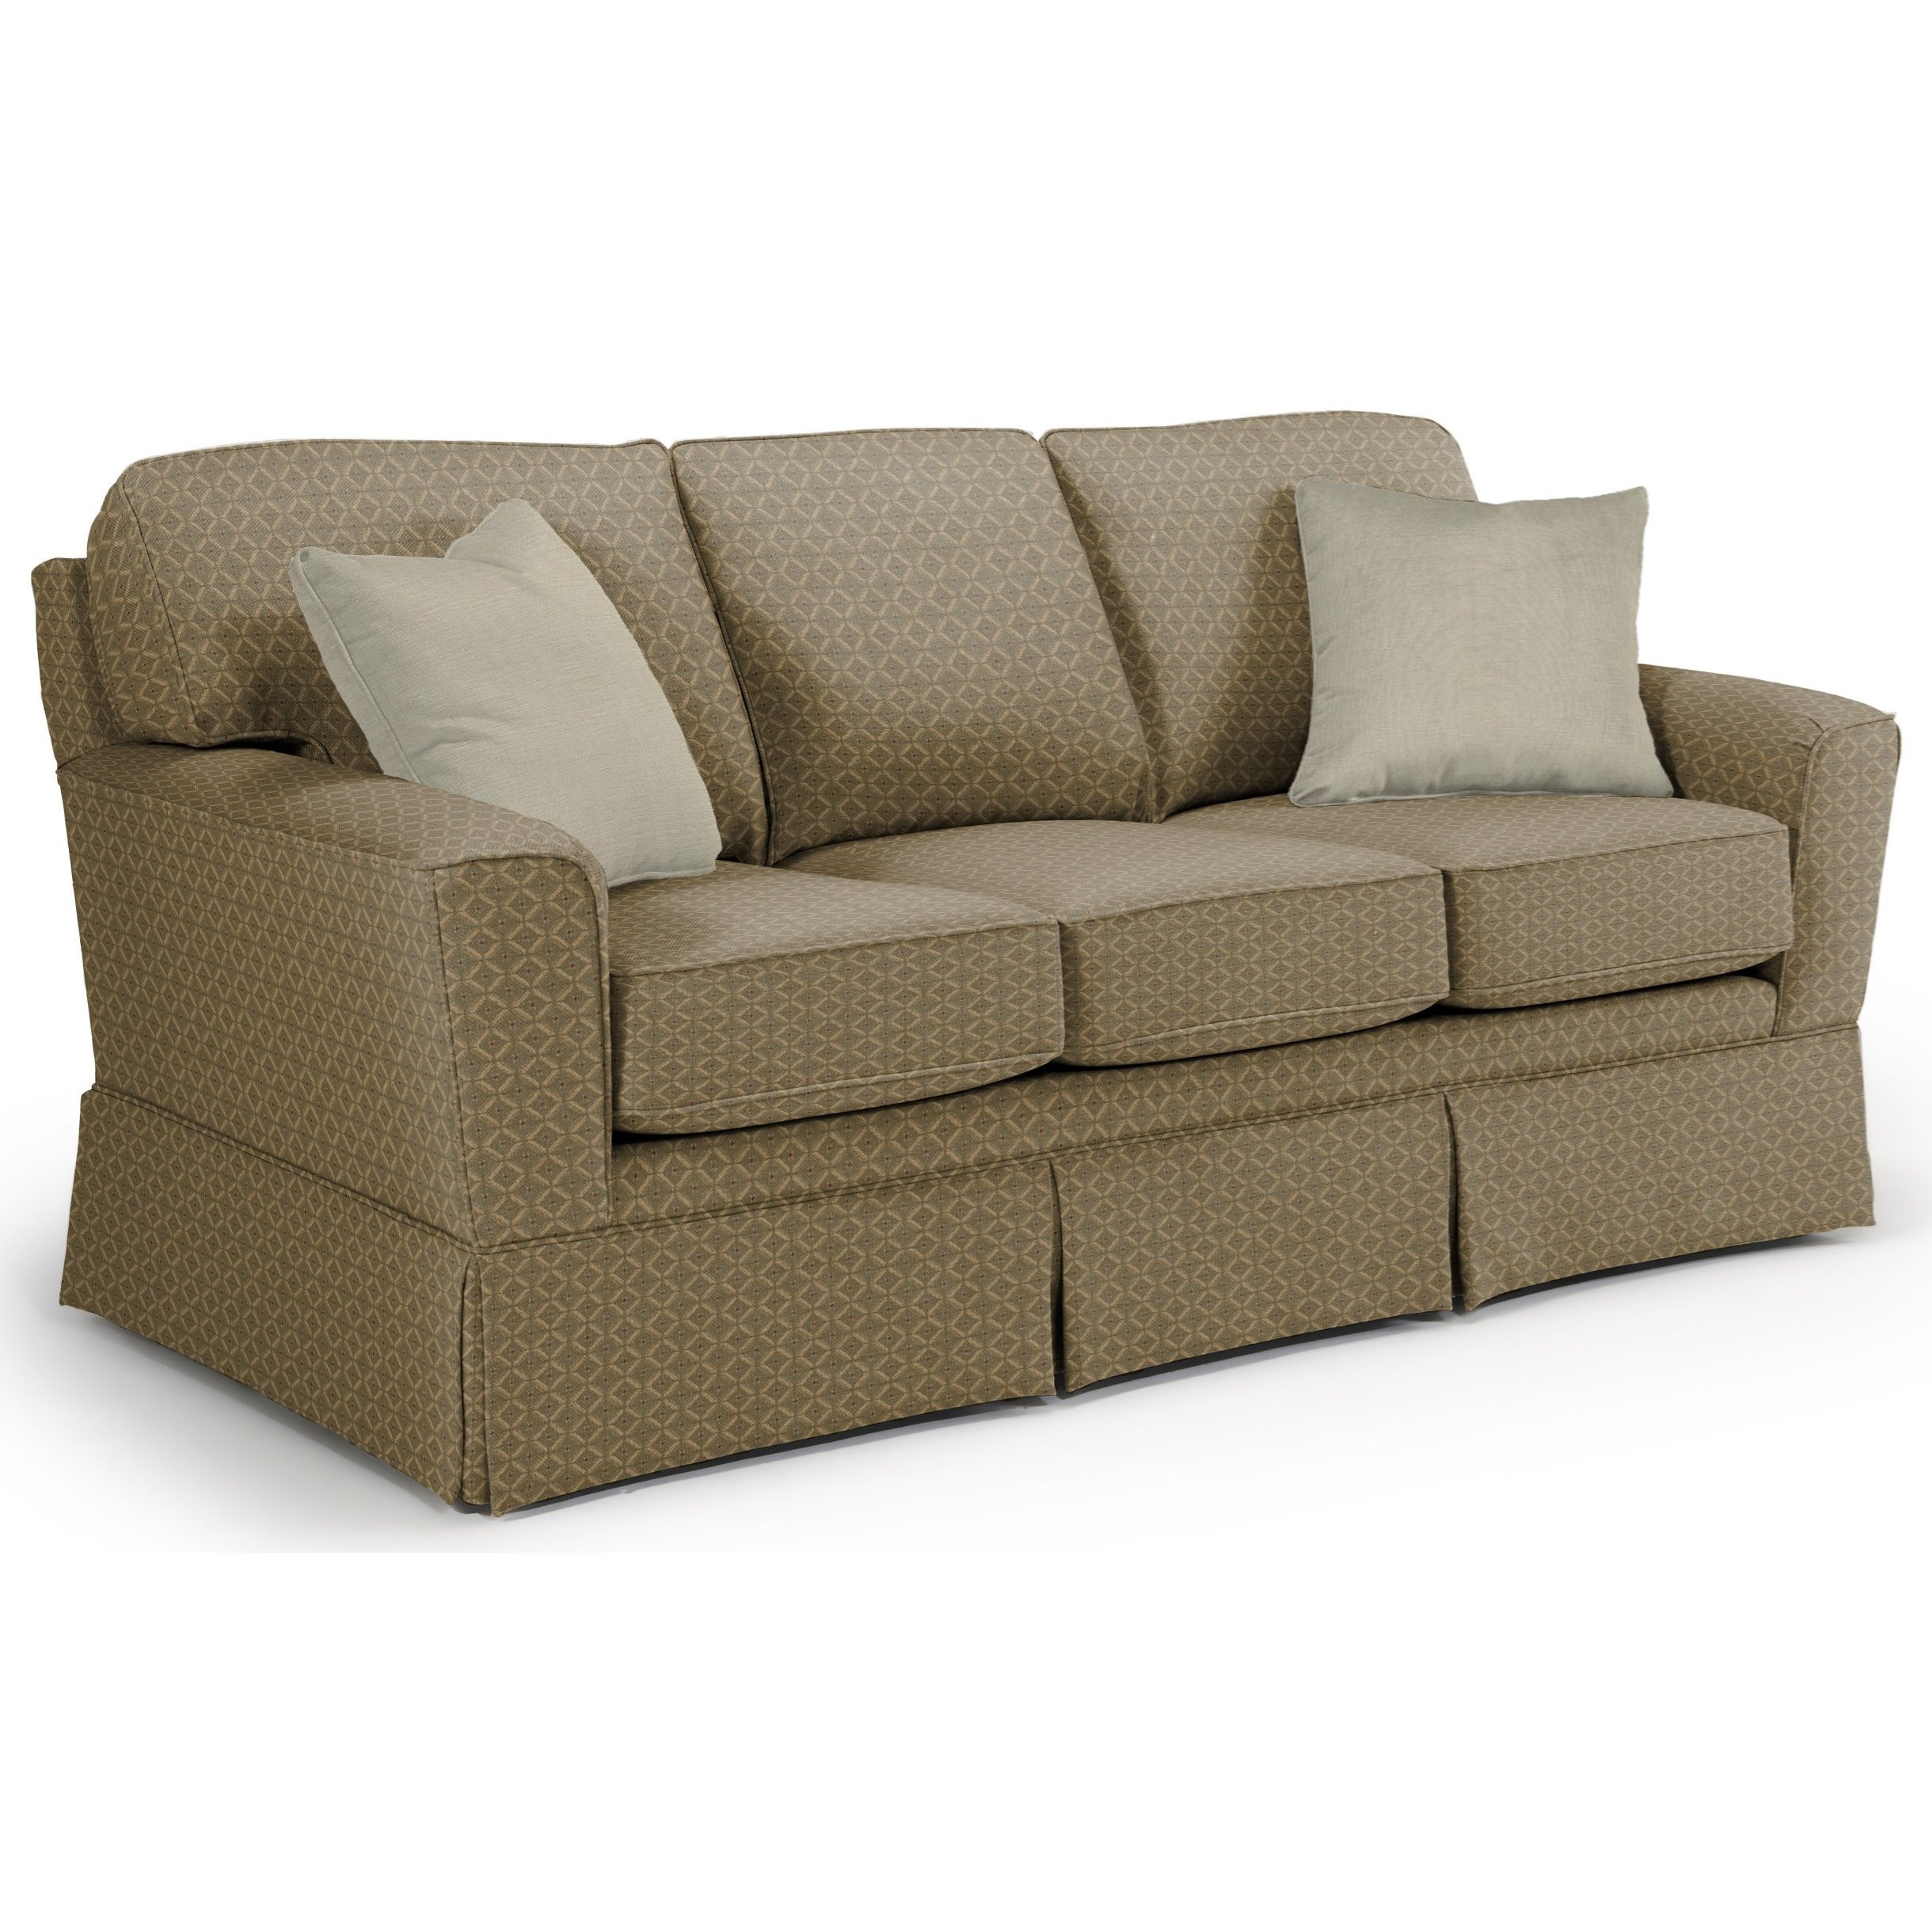 Best Home Furnishings Annabel  <b>Custom</b> 3 Over 3 Sofa - Item Number: -2110035674-18021